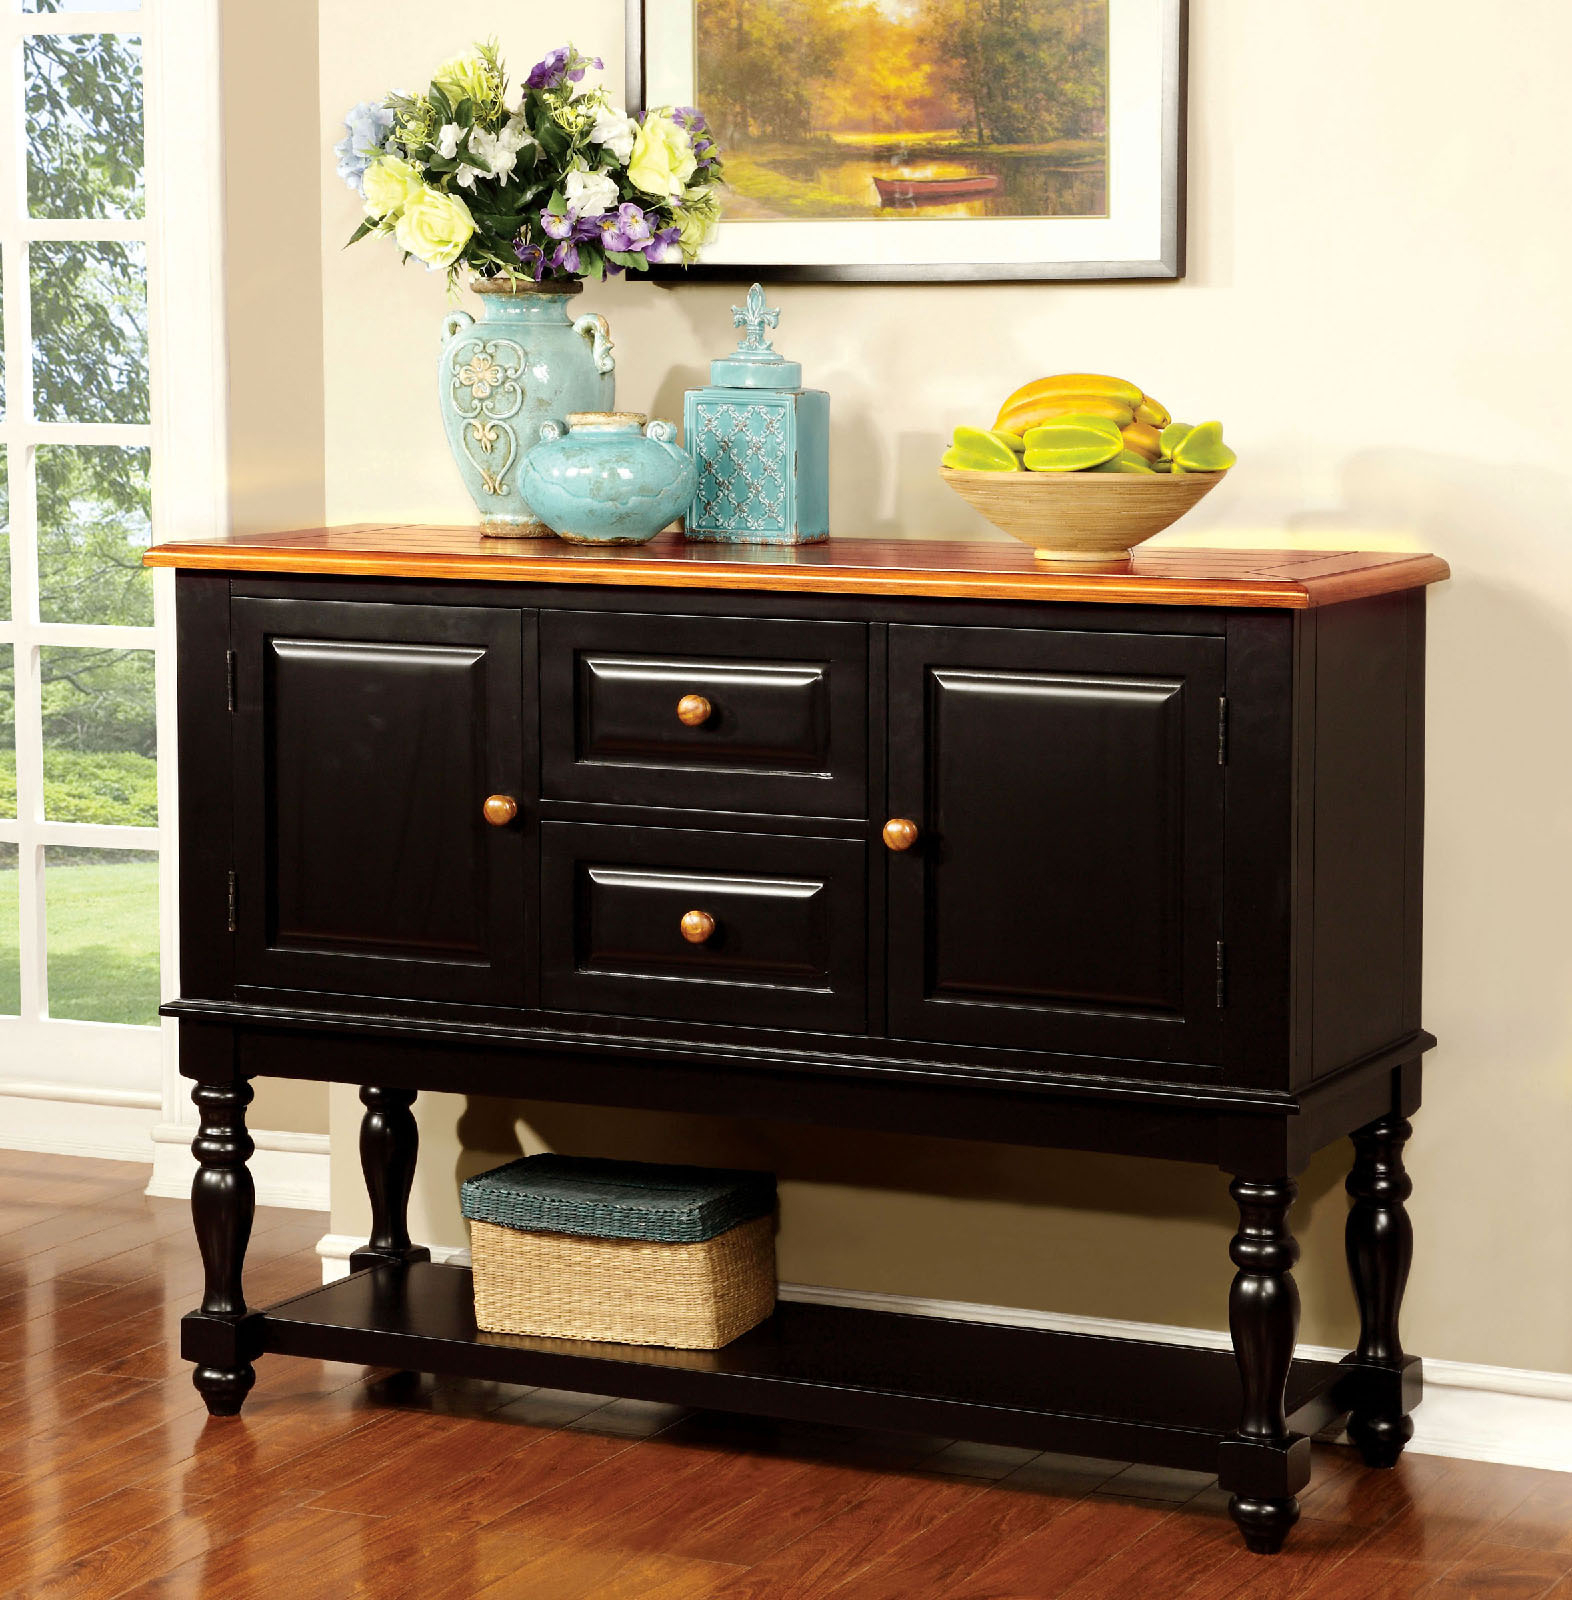 Furniture Of America Crestview Contemporary Buffet Sideboard Regarding Contemporary Cappuccino Buffets (View 11 of 30)